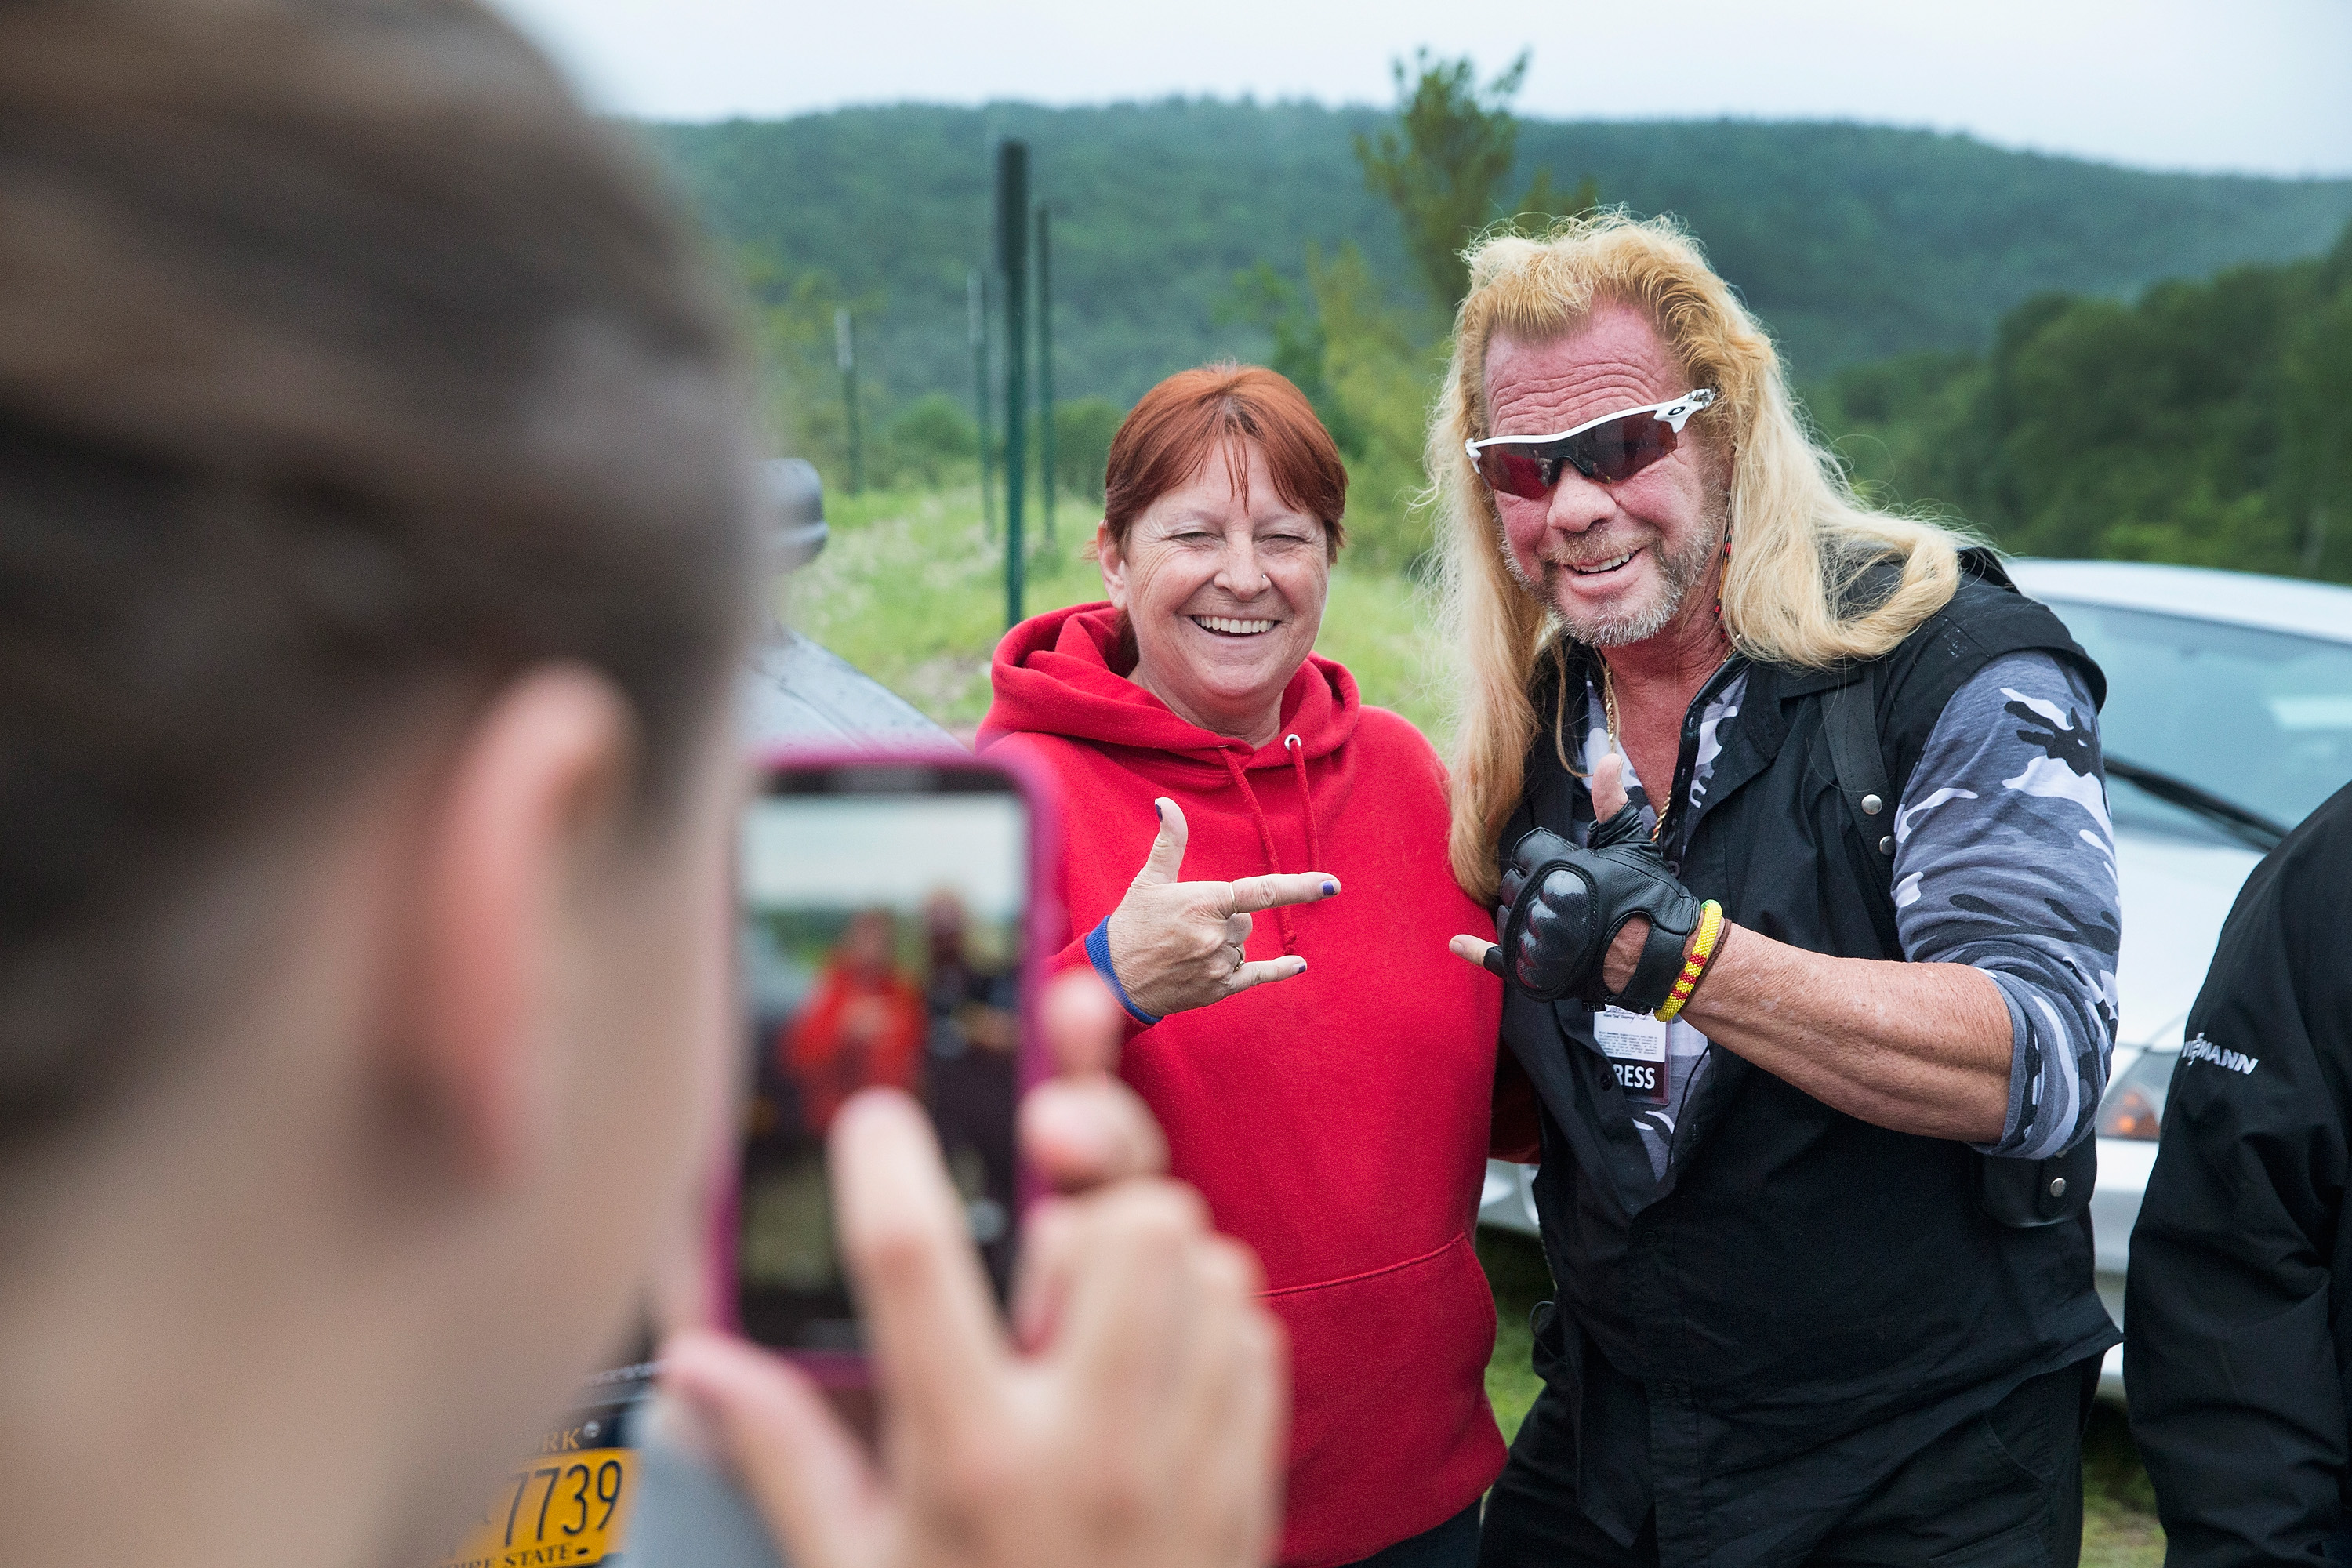 Beth Chapman 'Not Expected to Recover,' Photo Goes Viral